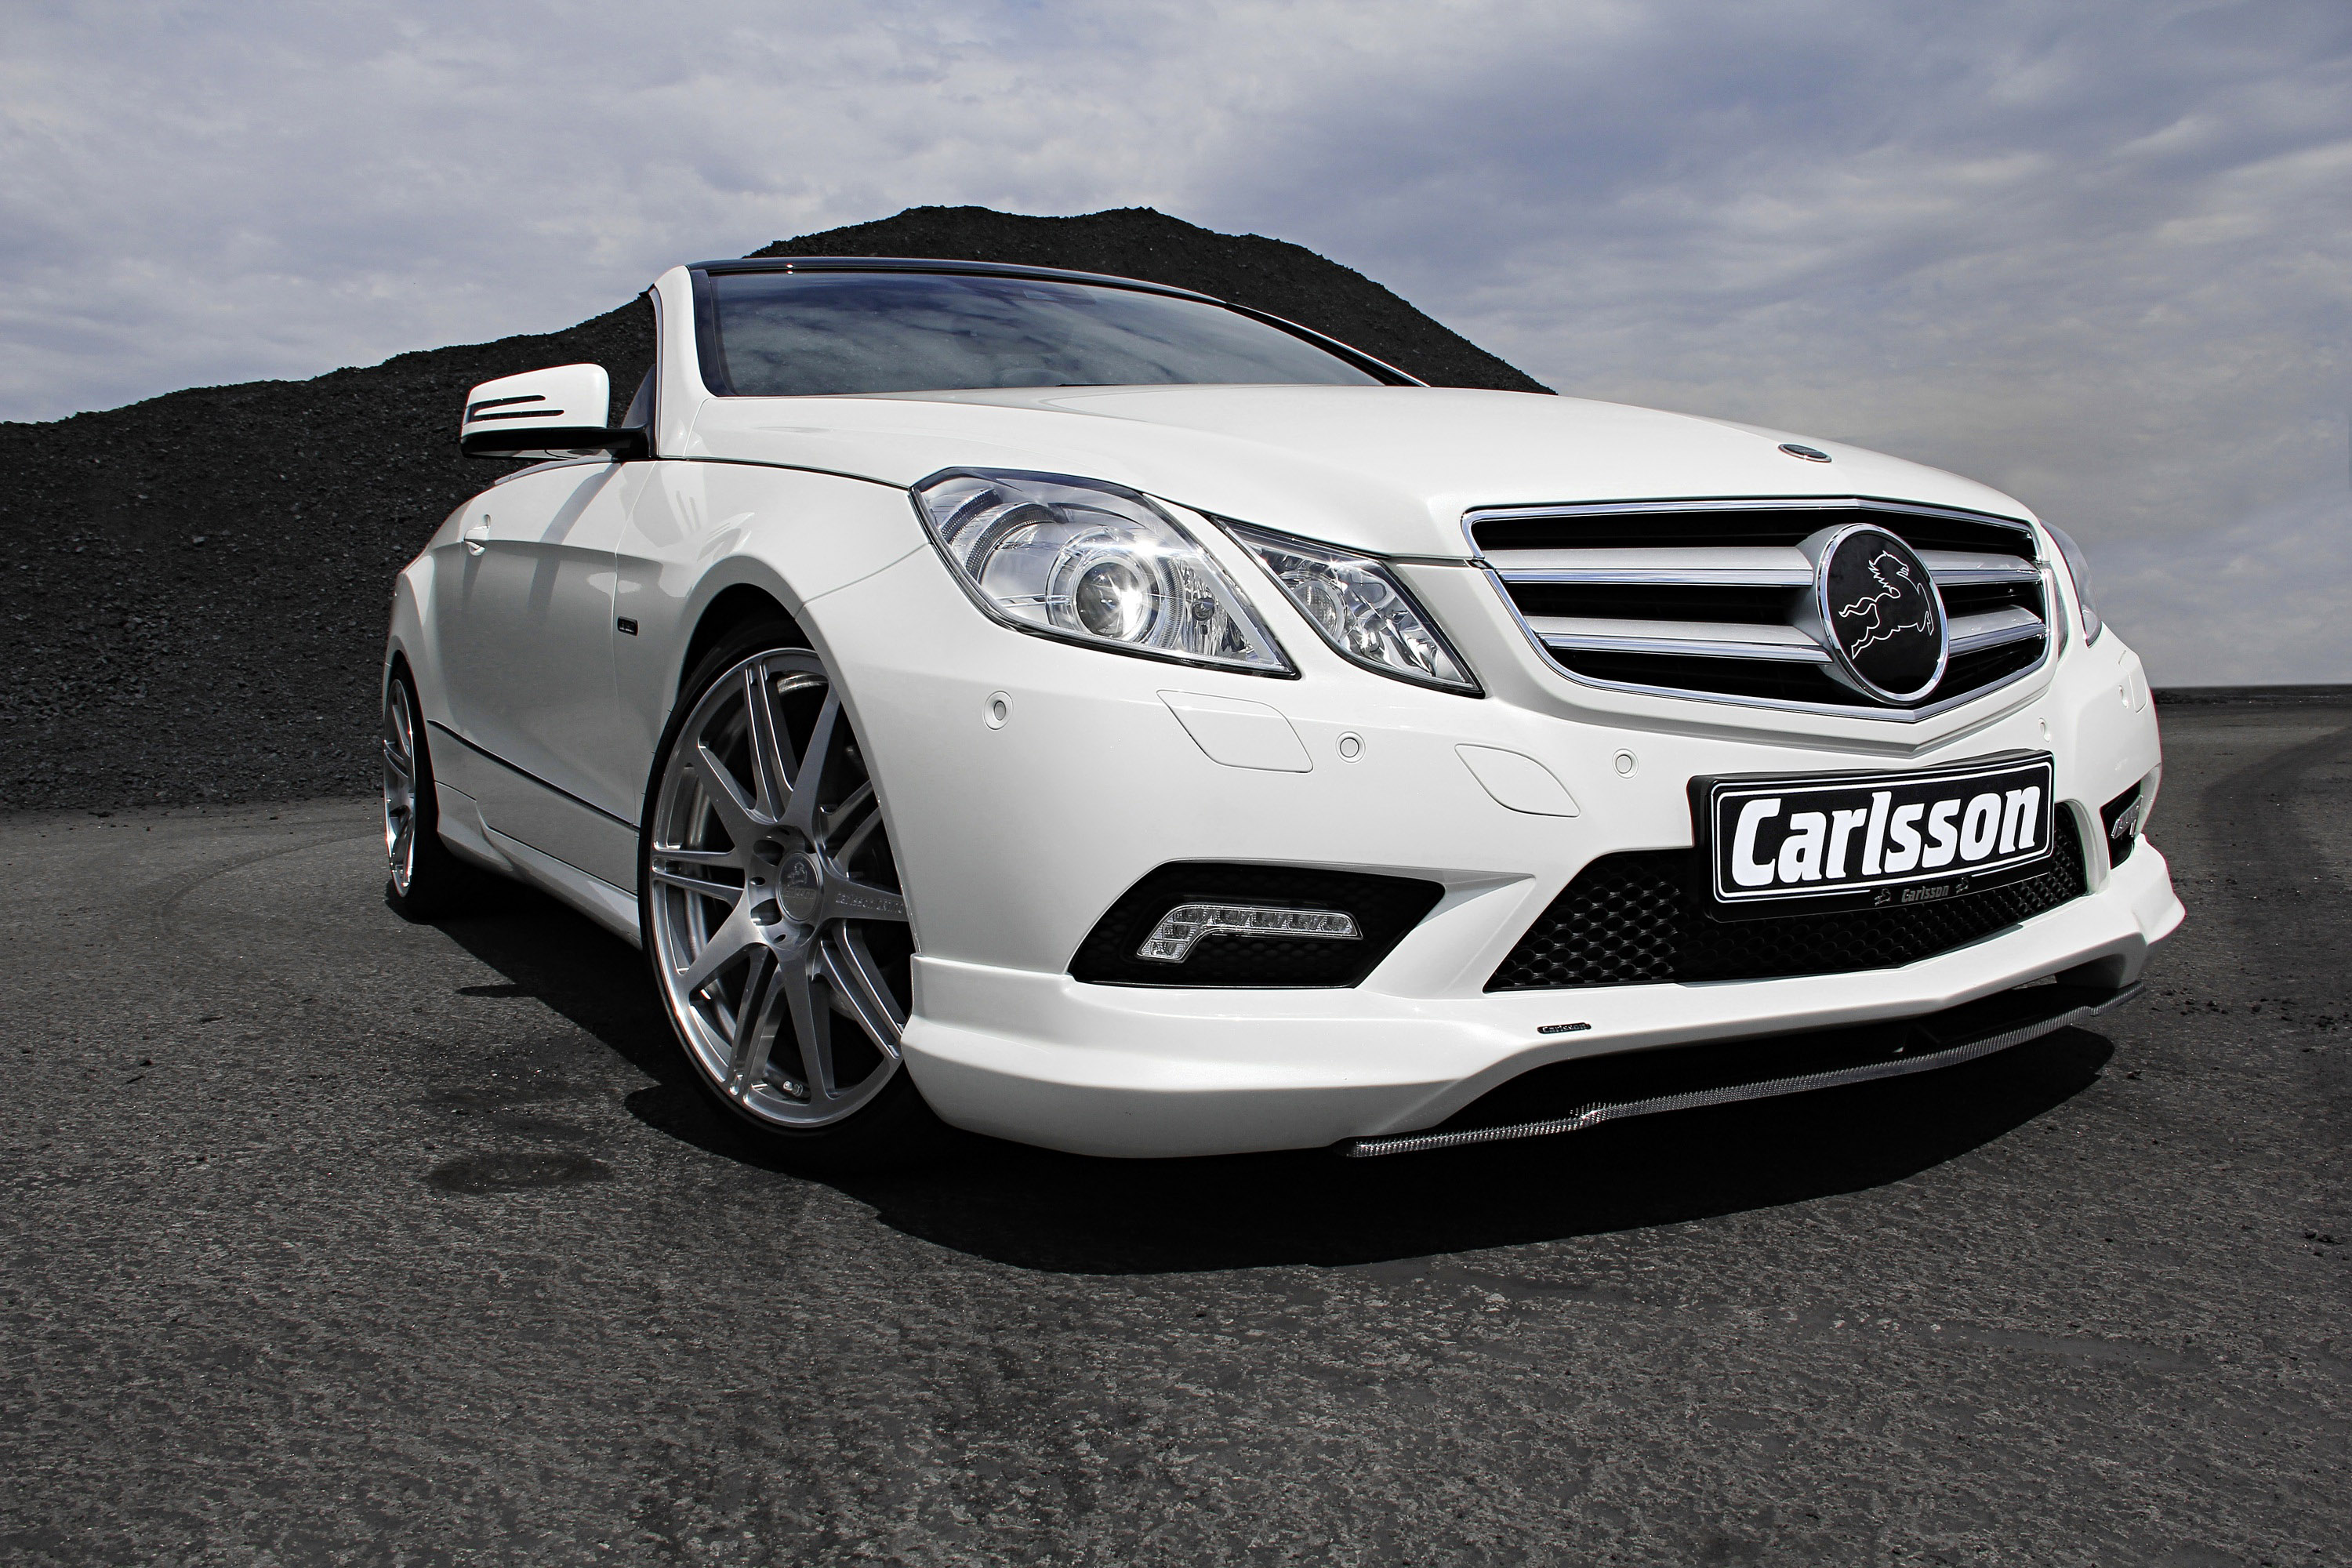 carlsson mercedes benz e class cabriolet. Black Bedroom Furniture Sets. Home Design Ideas